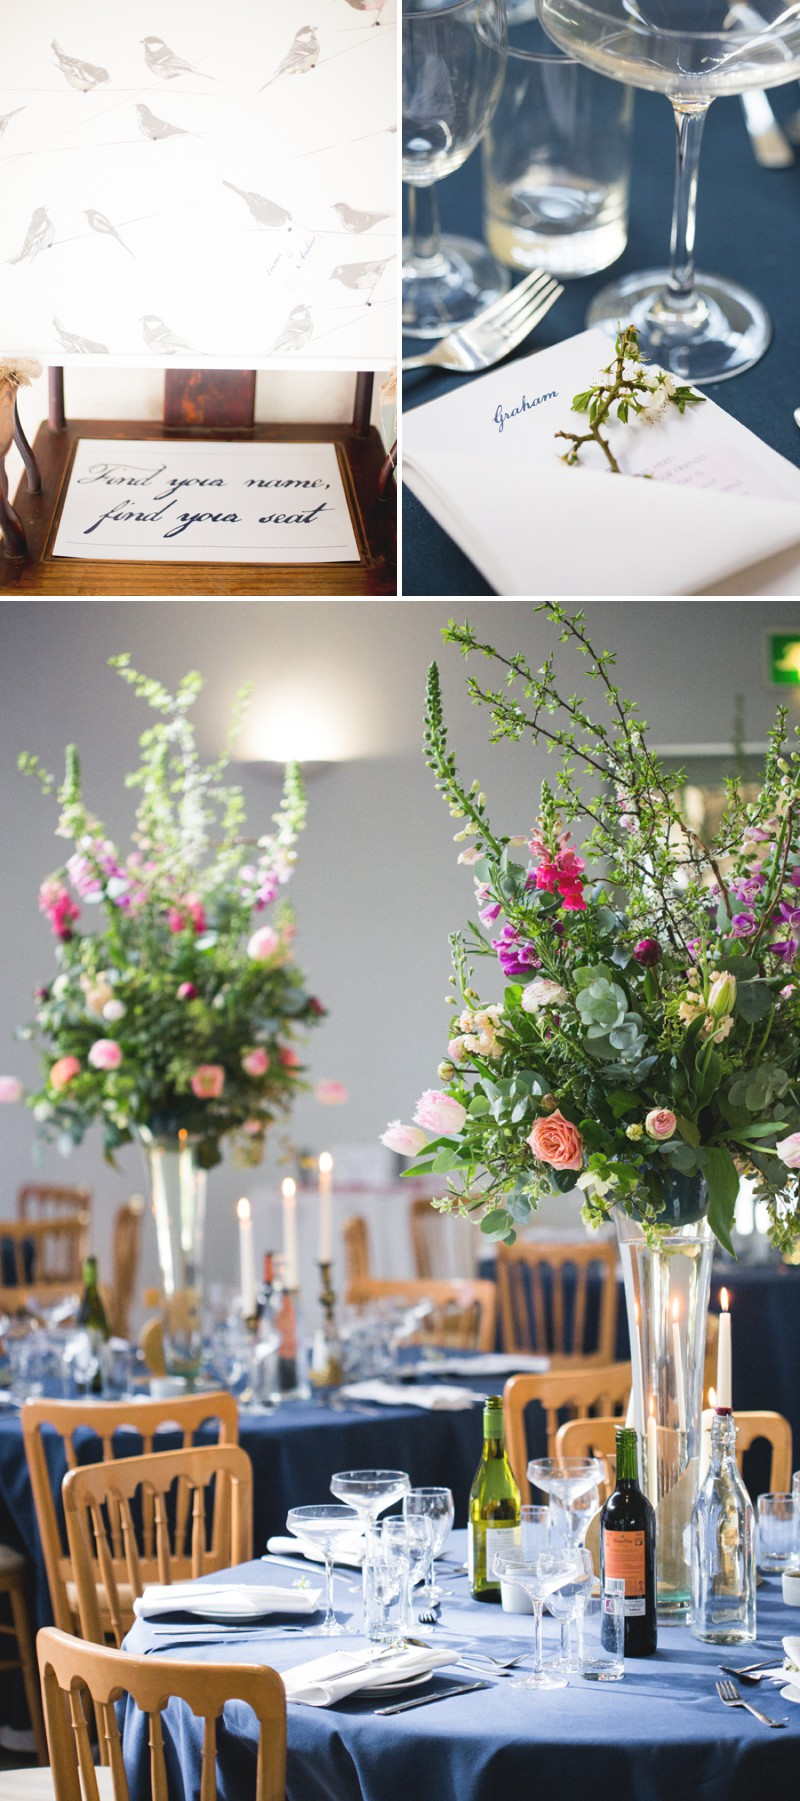 An Elegant English Wedding At The Matara Centre In The Cotswolds With A Bespoke Jenny Lessin Wedding Skirt and Top And Hot Pink Bridesmaid Dresses And A Gin And Tonic Cocktail Bar By M&J Photography._0011